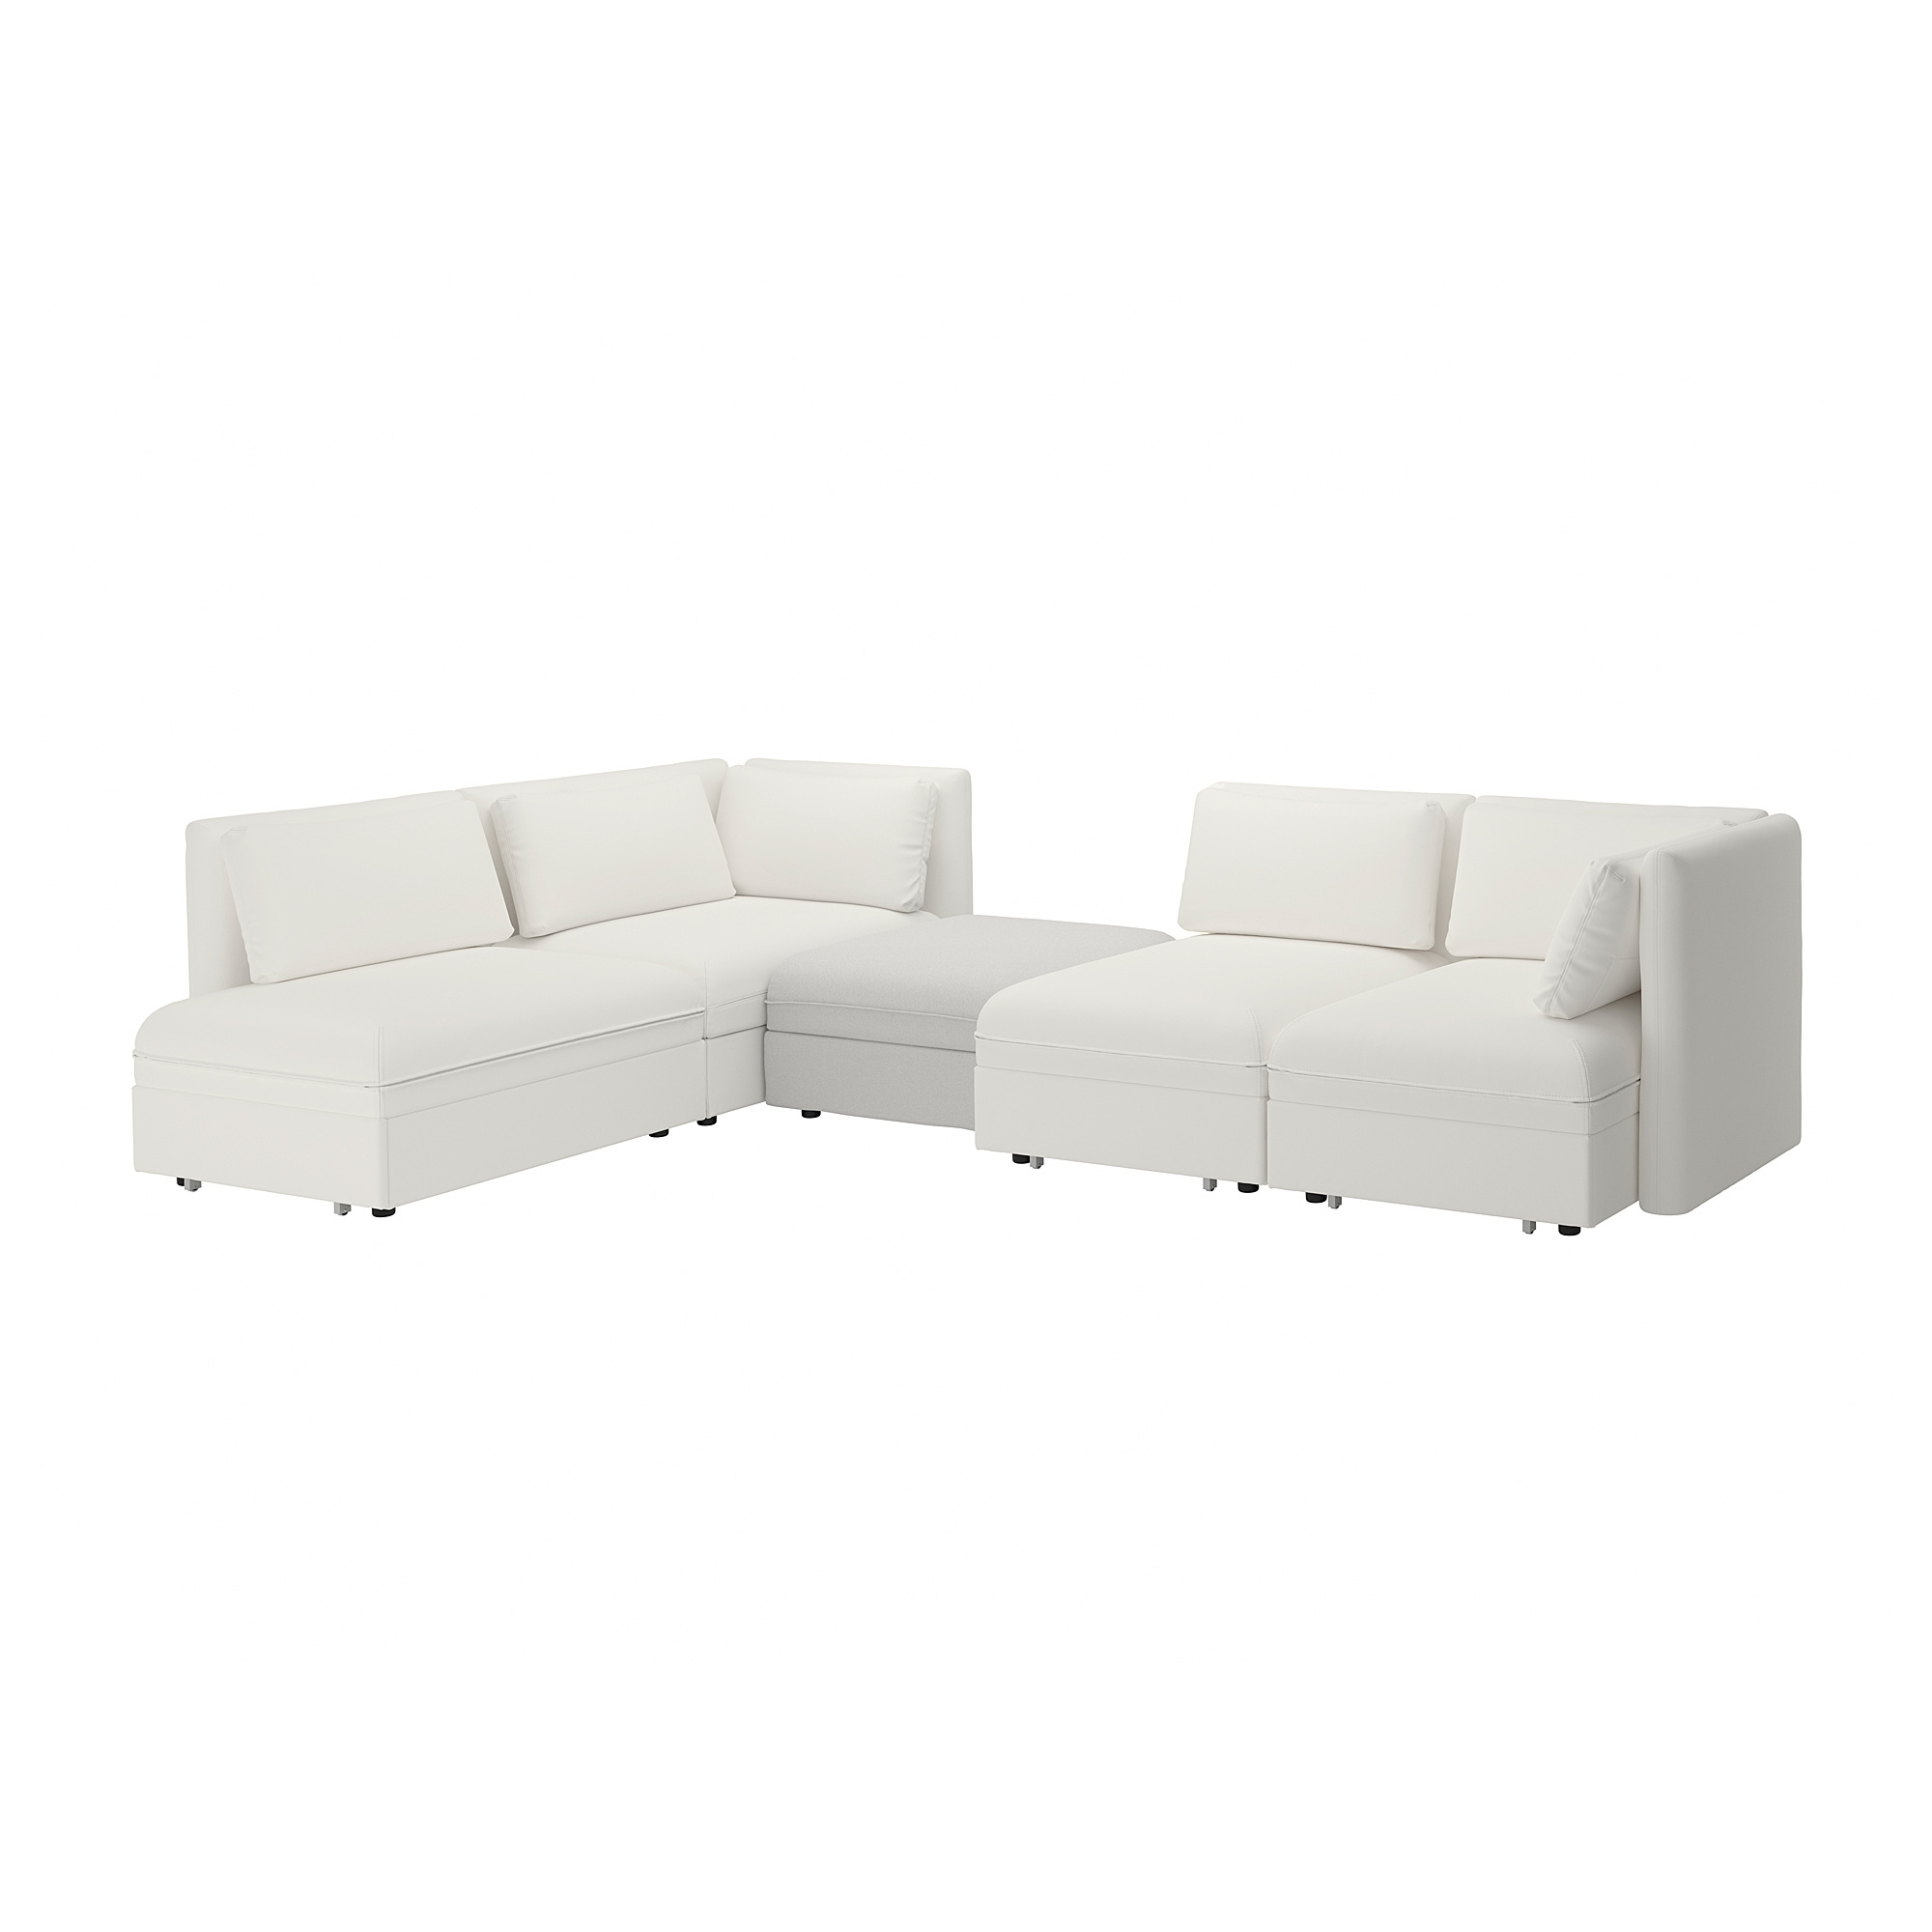 Vallentuna 4 Seat Modular Sofa With 3 Beds Vallentuna 4 Seat Modular Sofa W 3 Sofa Beds